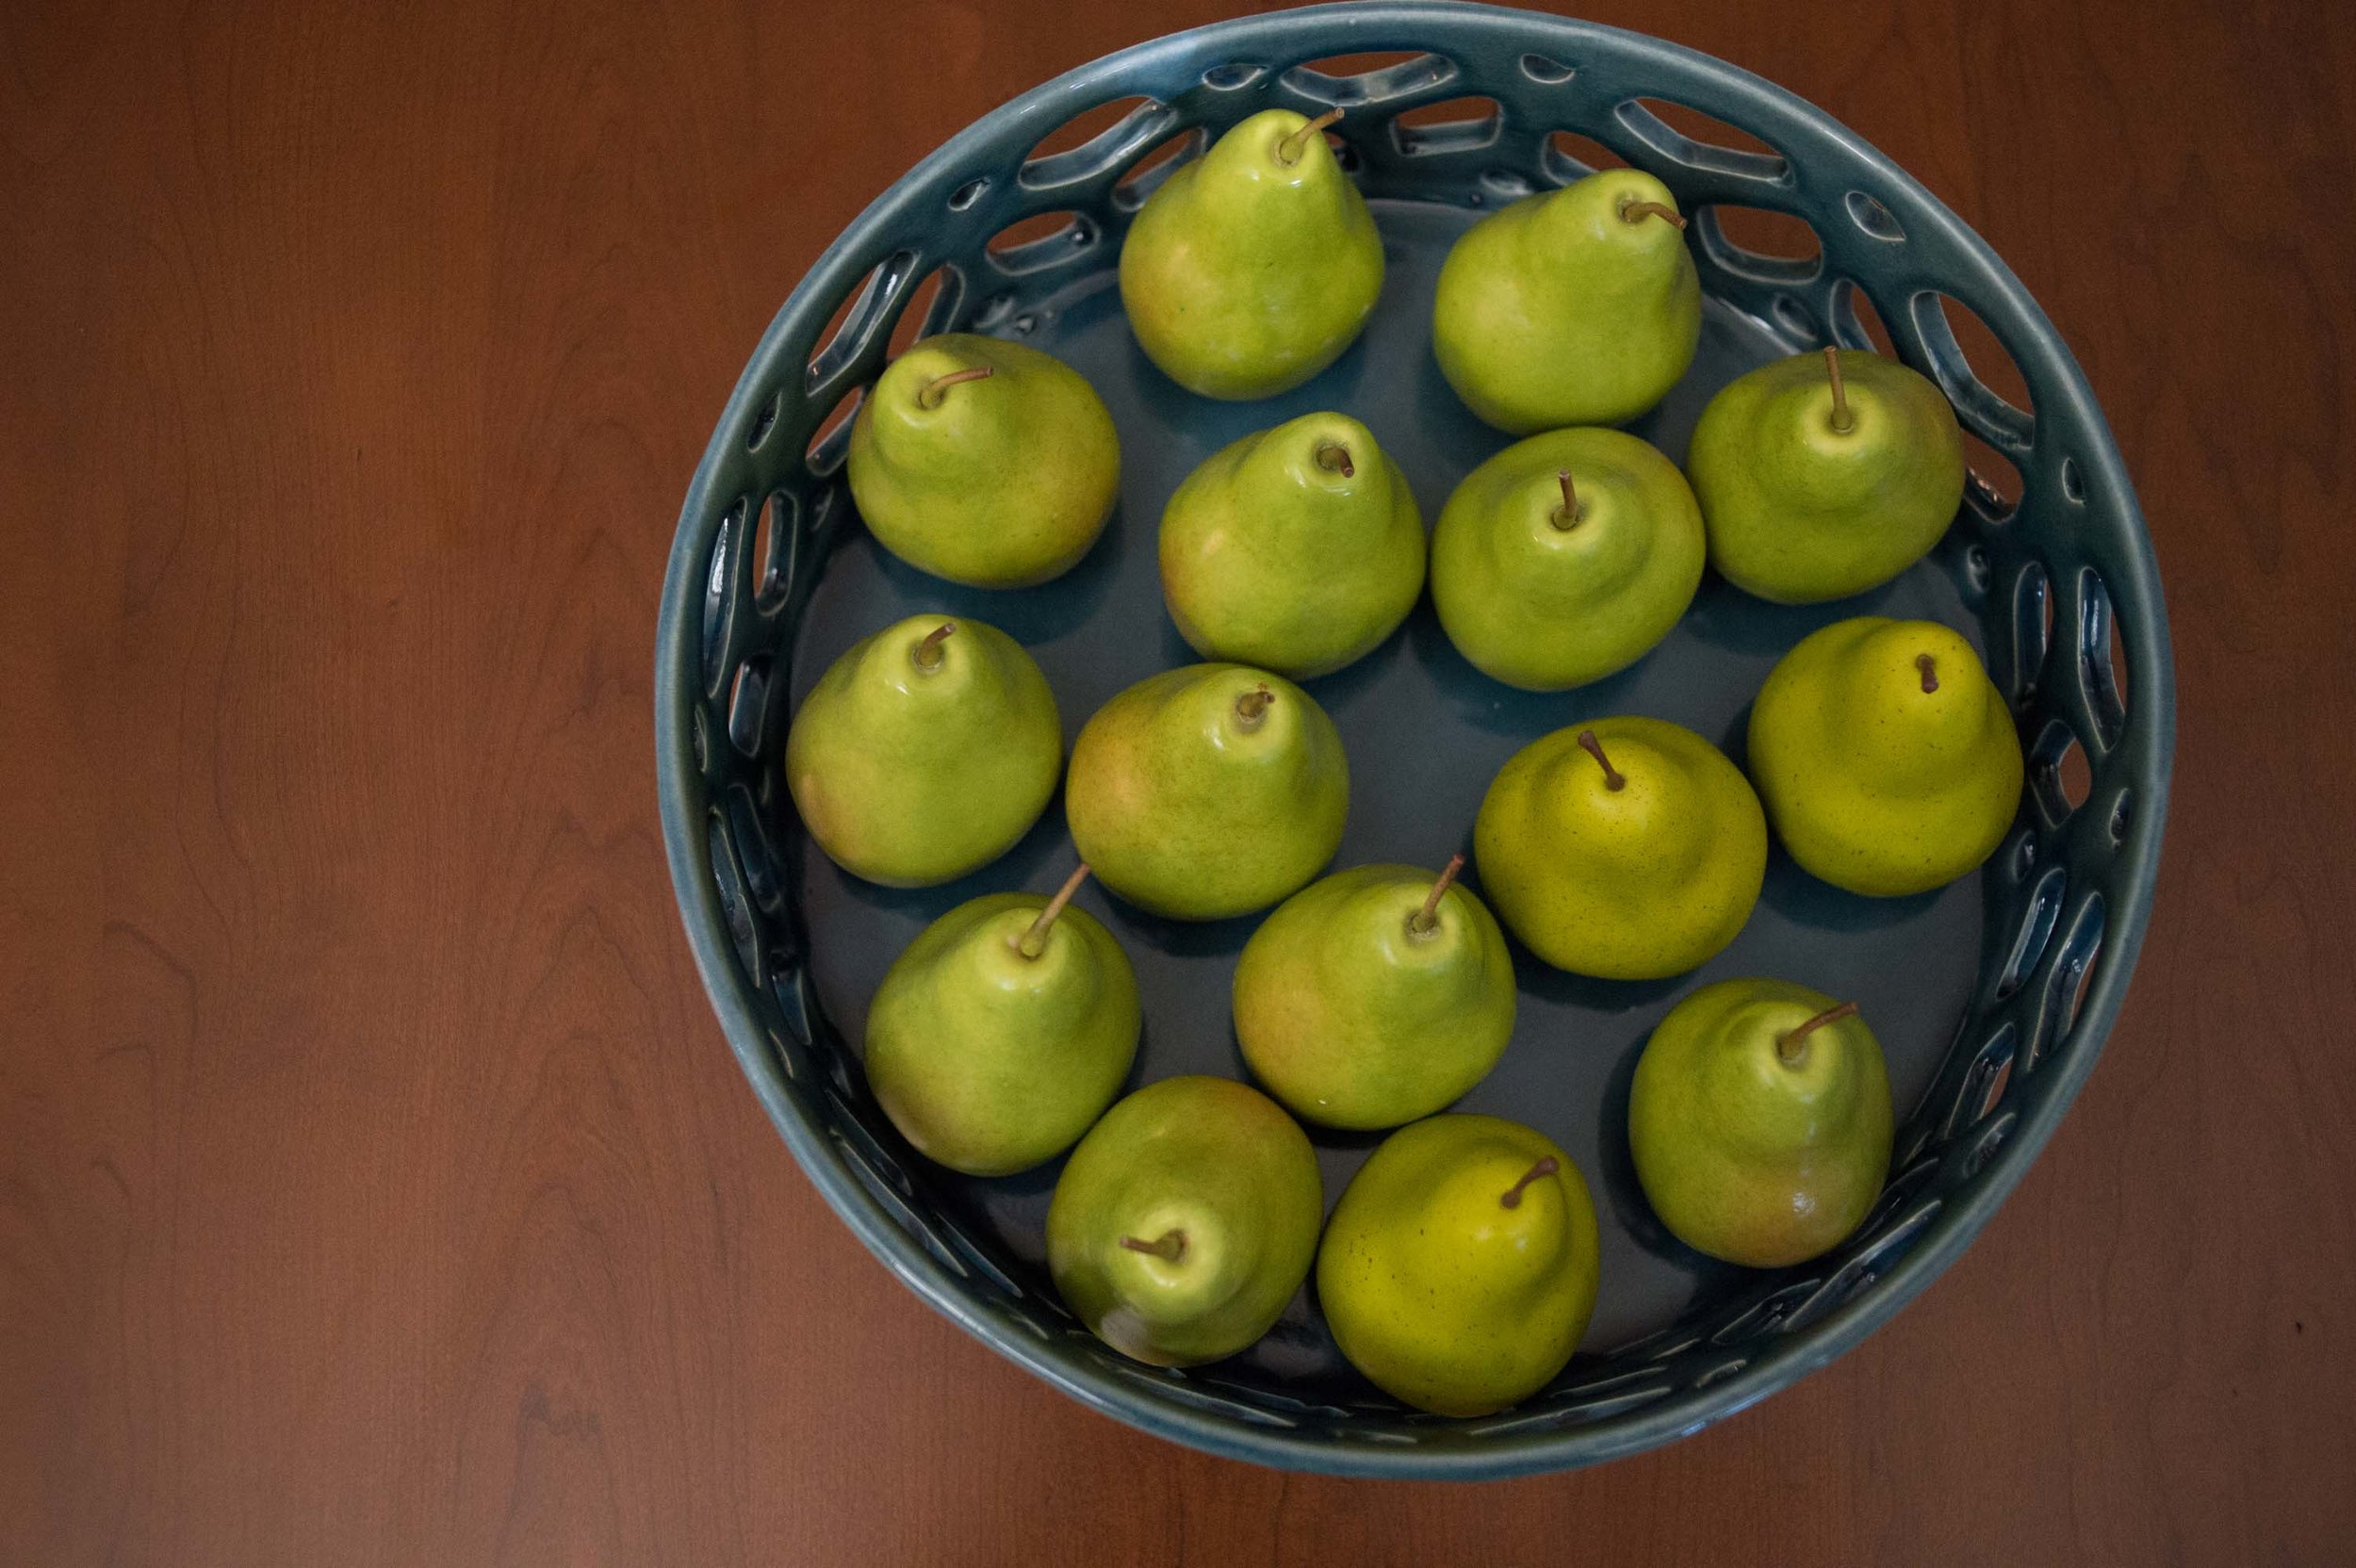 Pears on a ceramic modern style plate with wooden background